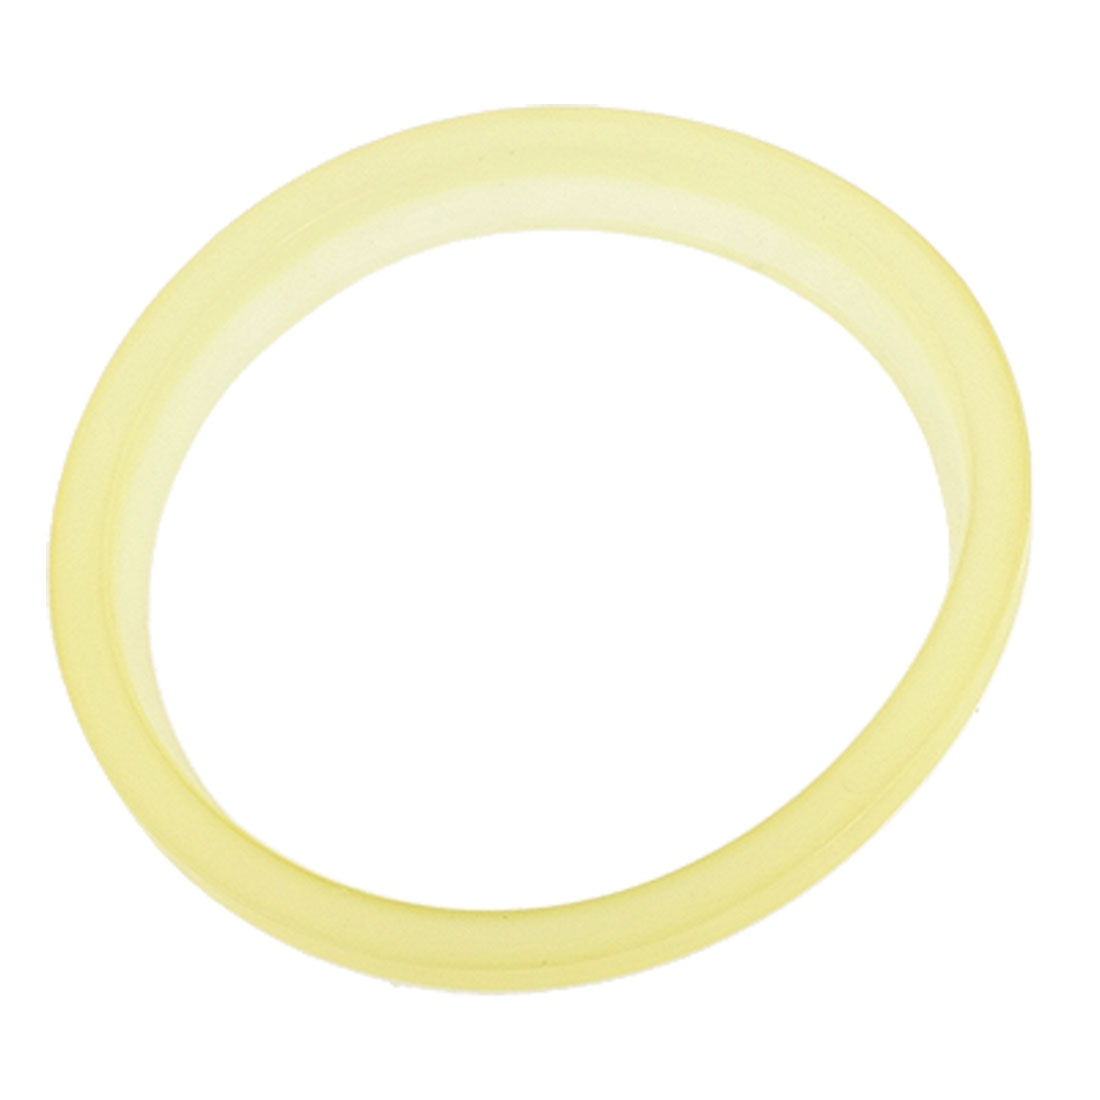 Cylinder 105 x 121 x 7 x 14mm Polyurethane J Type Dust Seal Ring